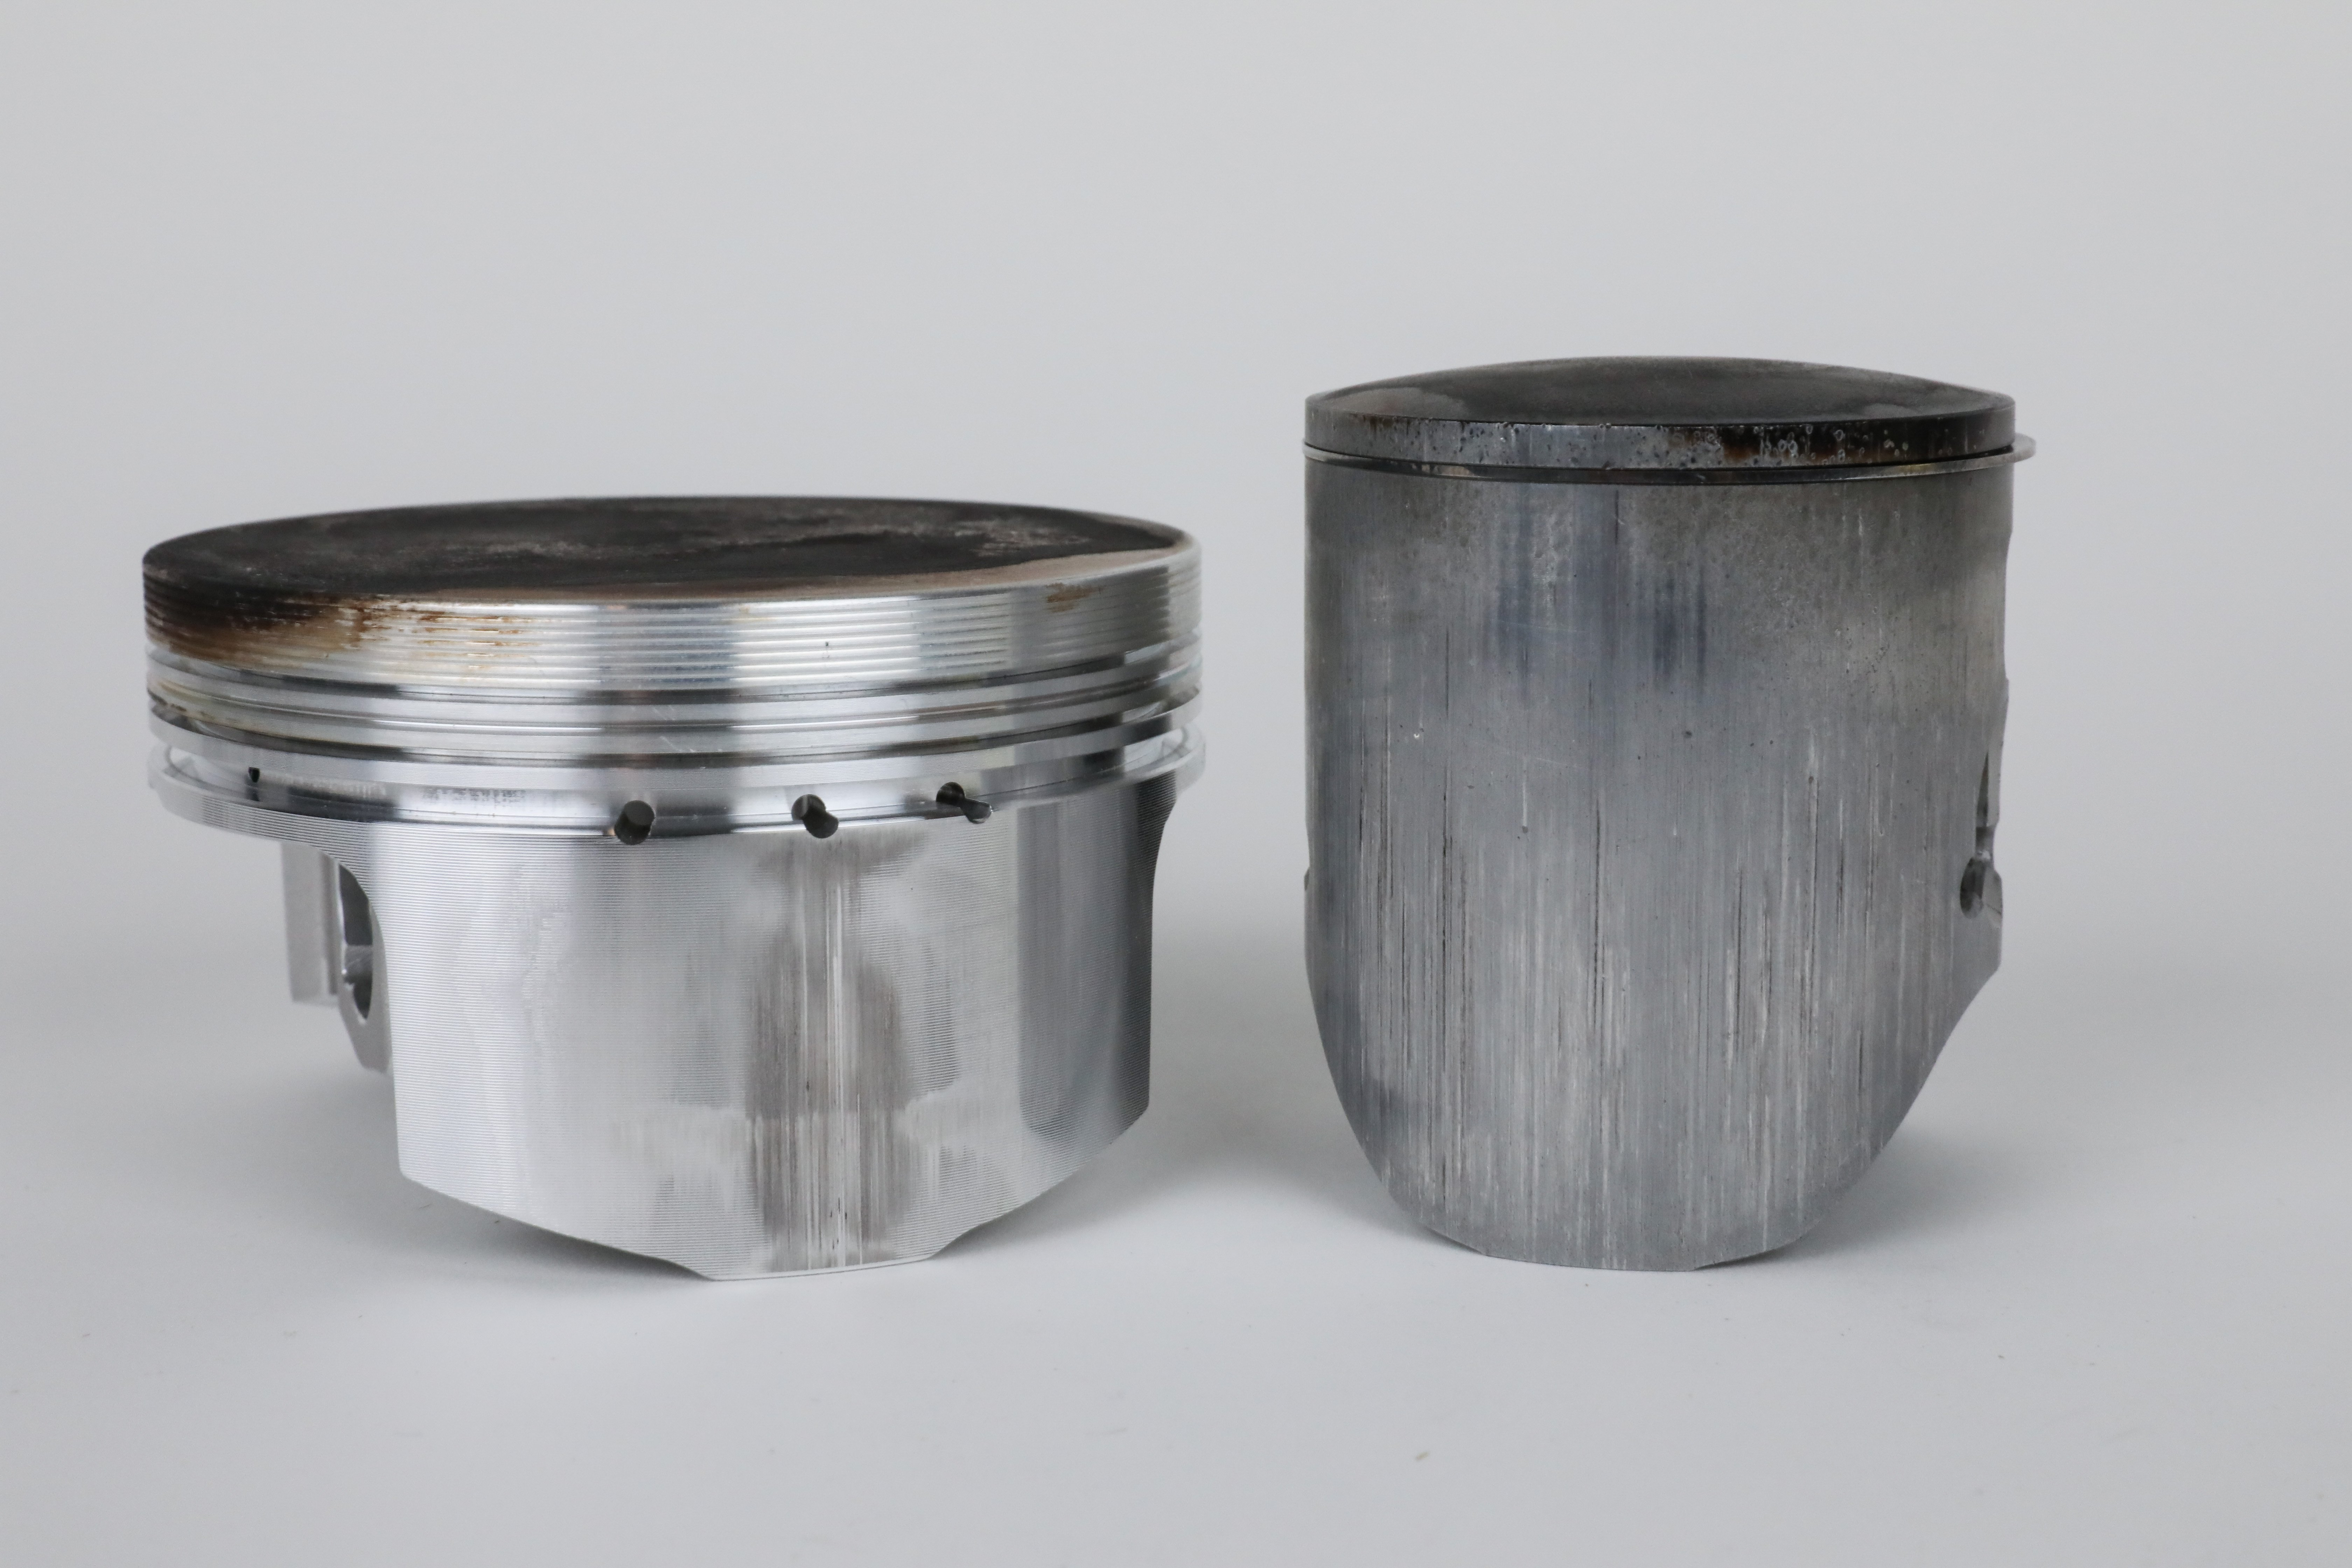 How to Know When to Replace the Piston in Your Motorcycle or ATV